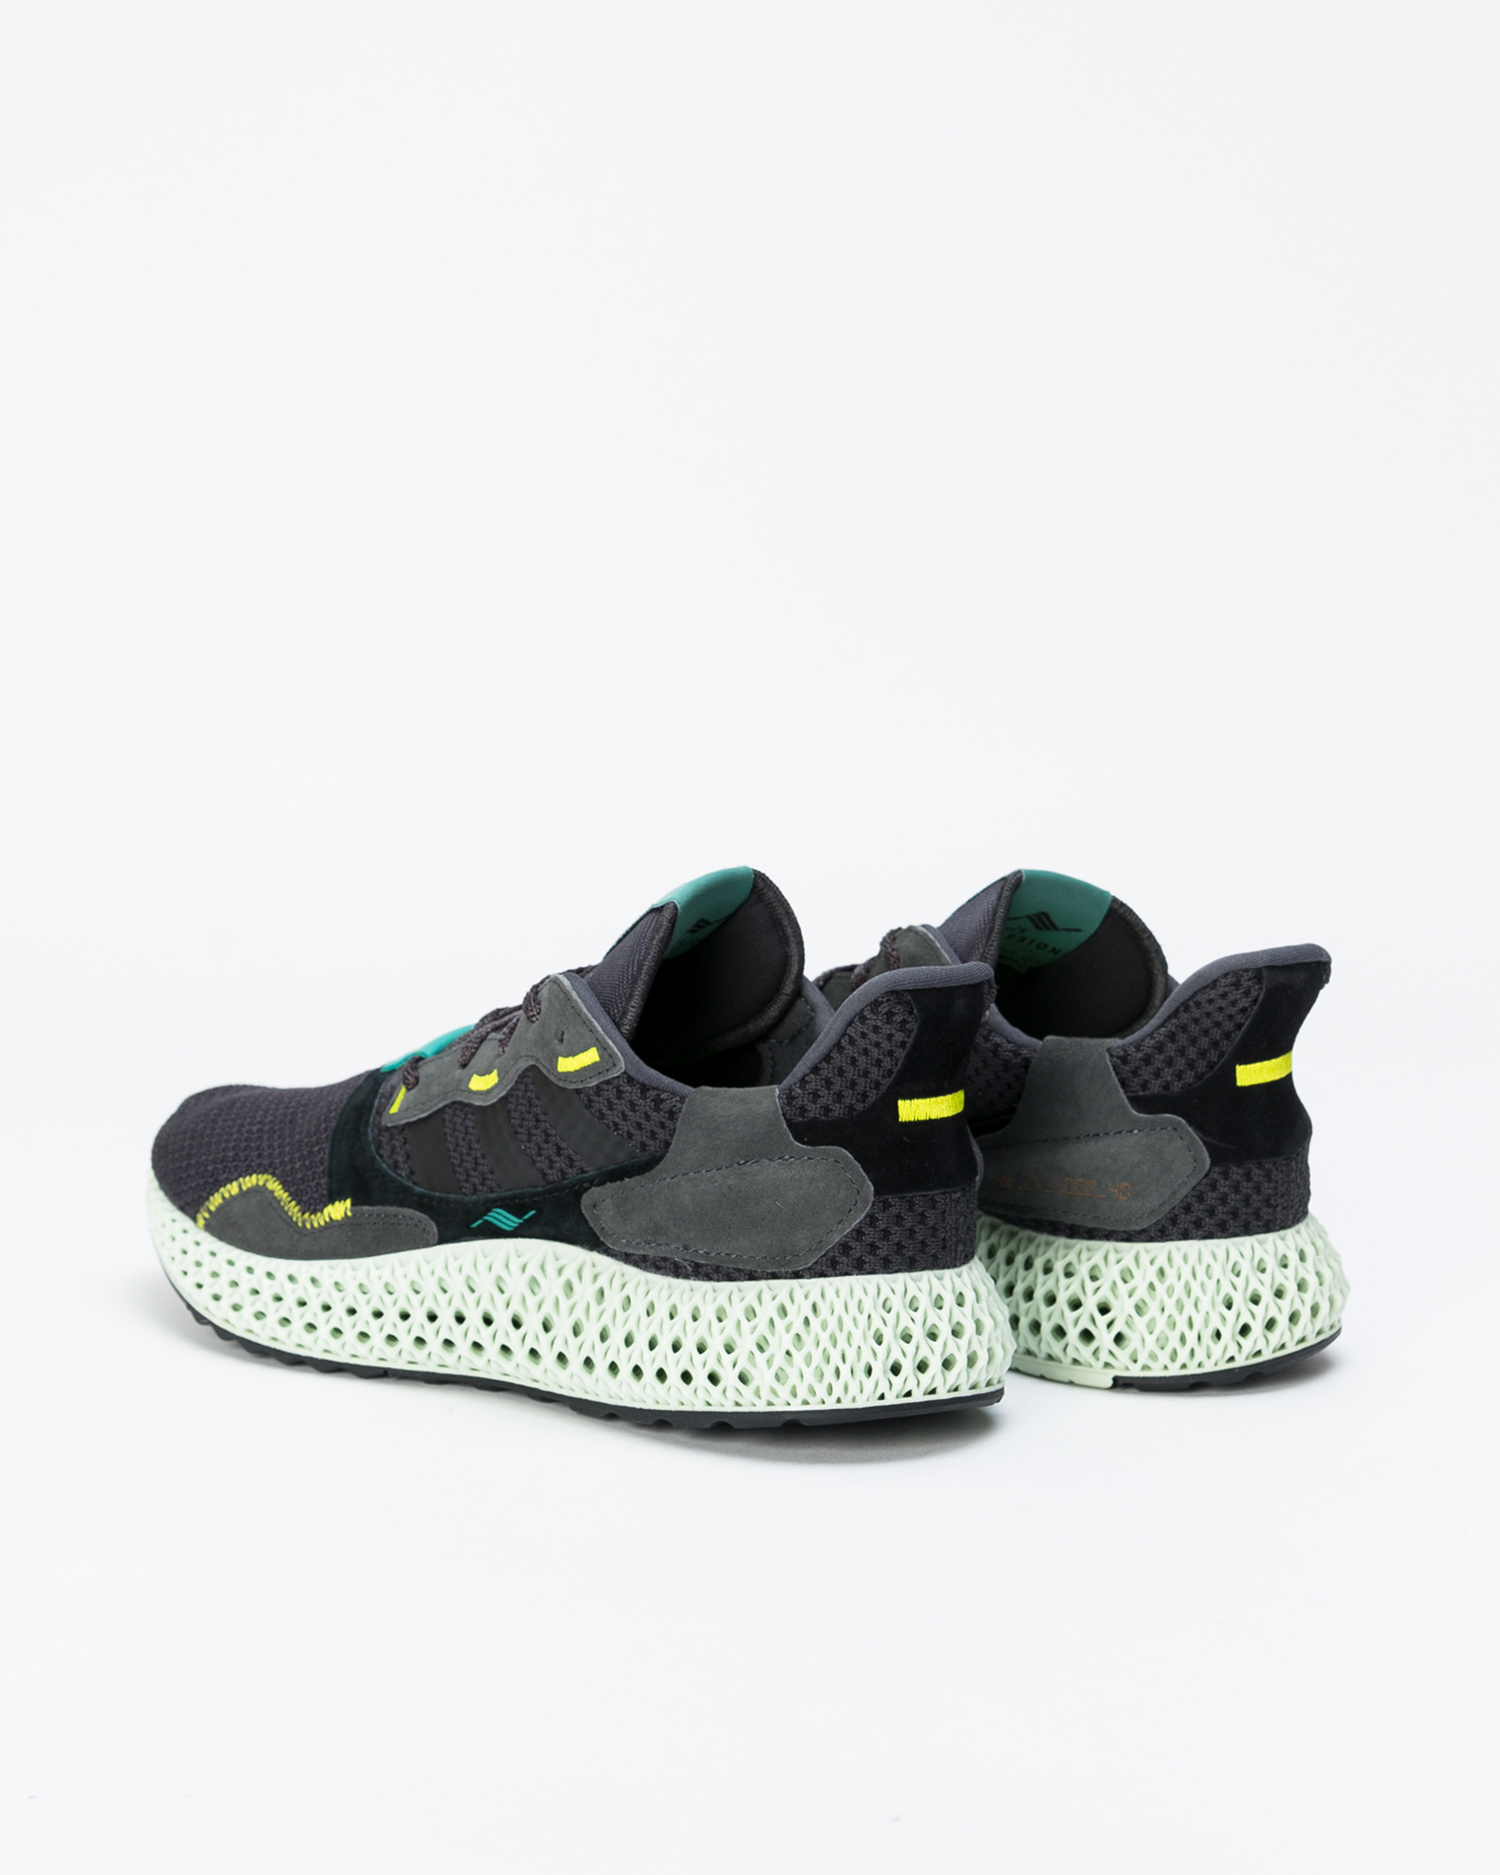 Adidas zx 4000 4d          carbon/carbon/sesoye